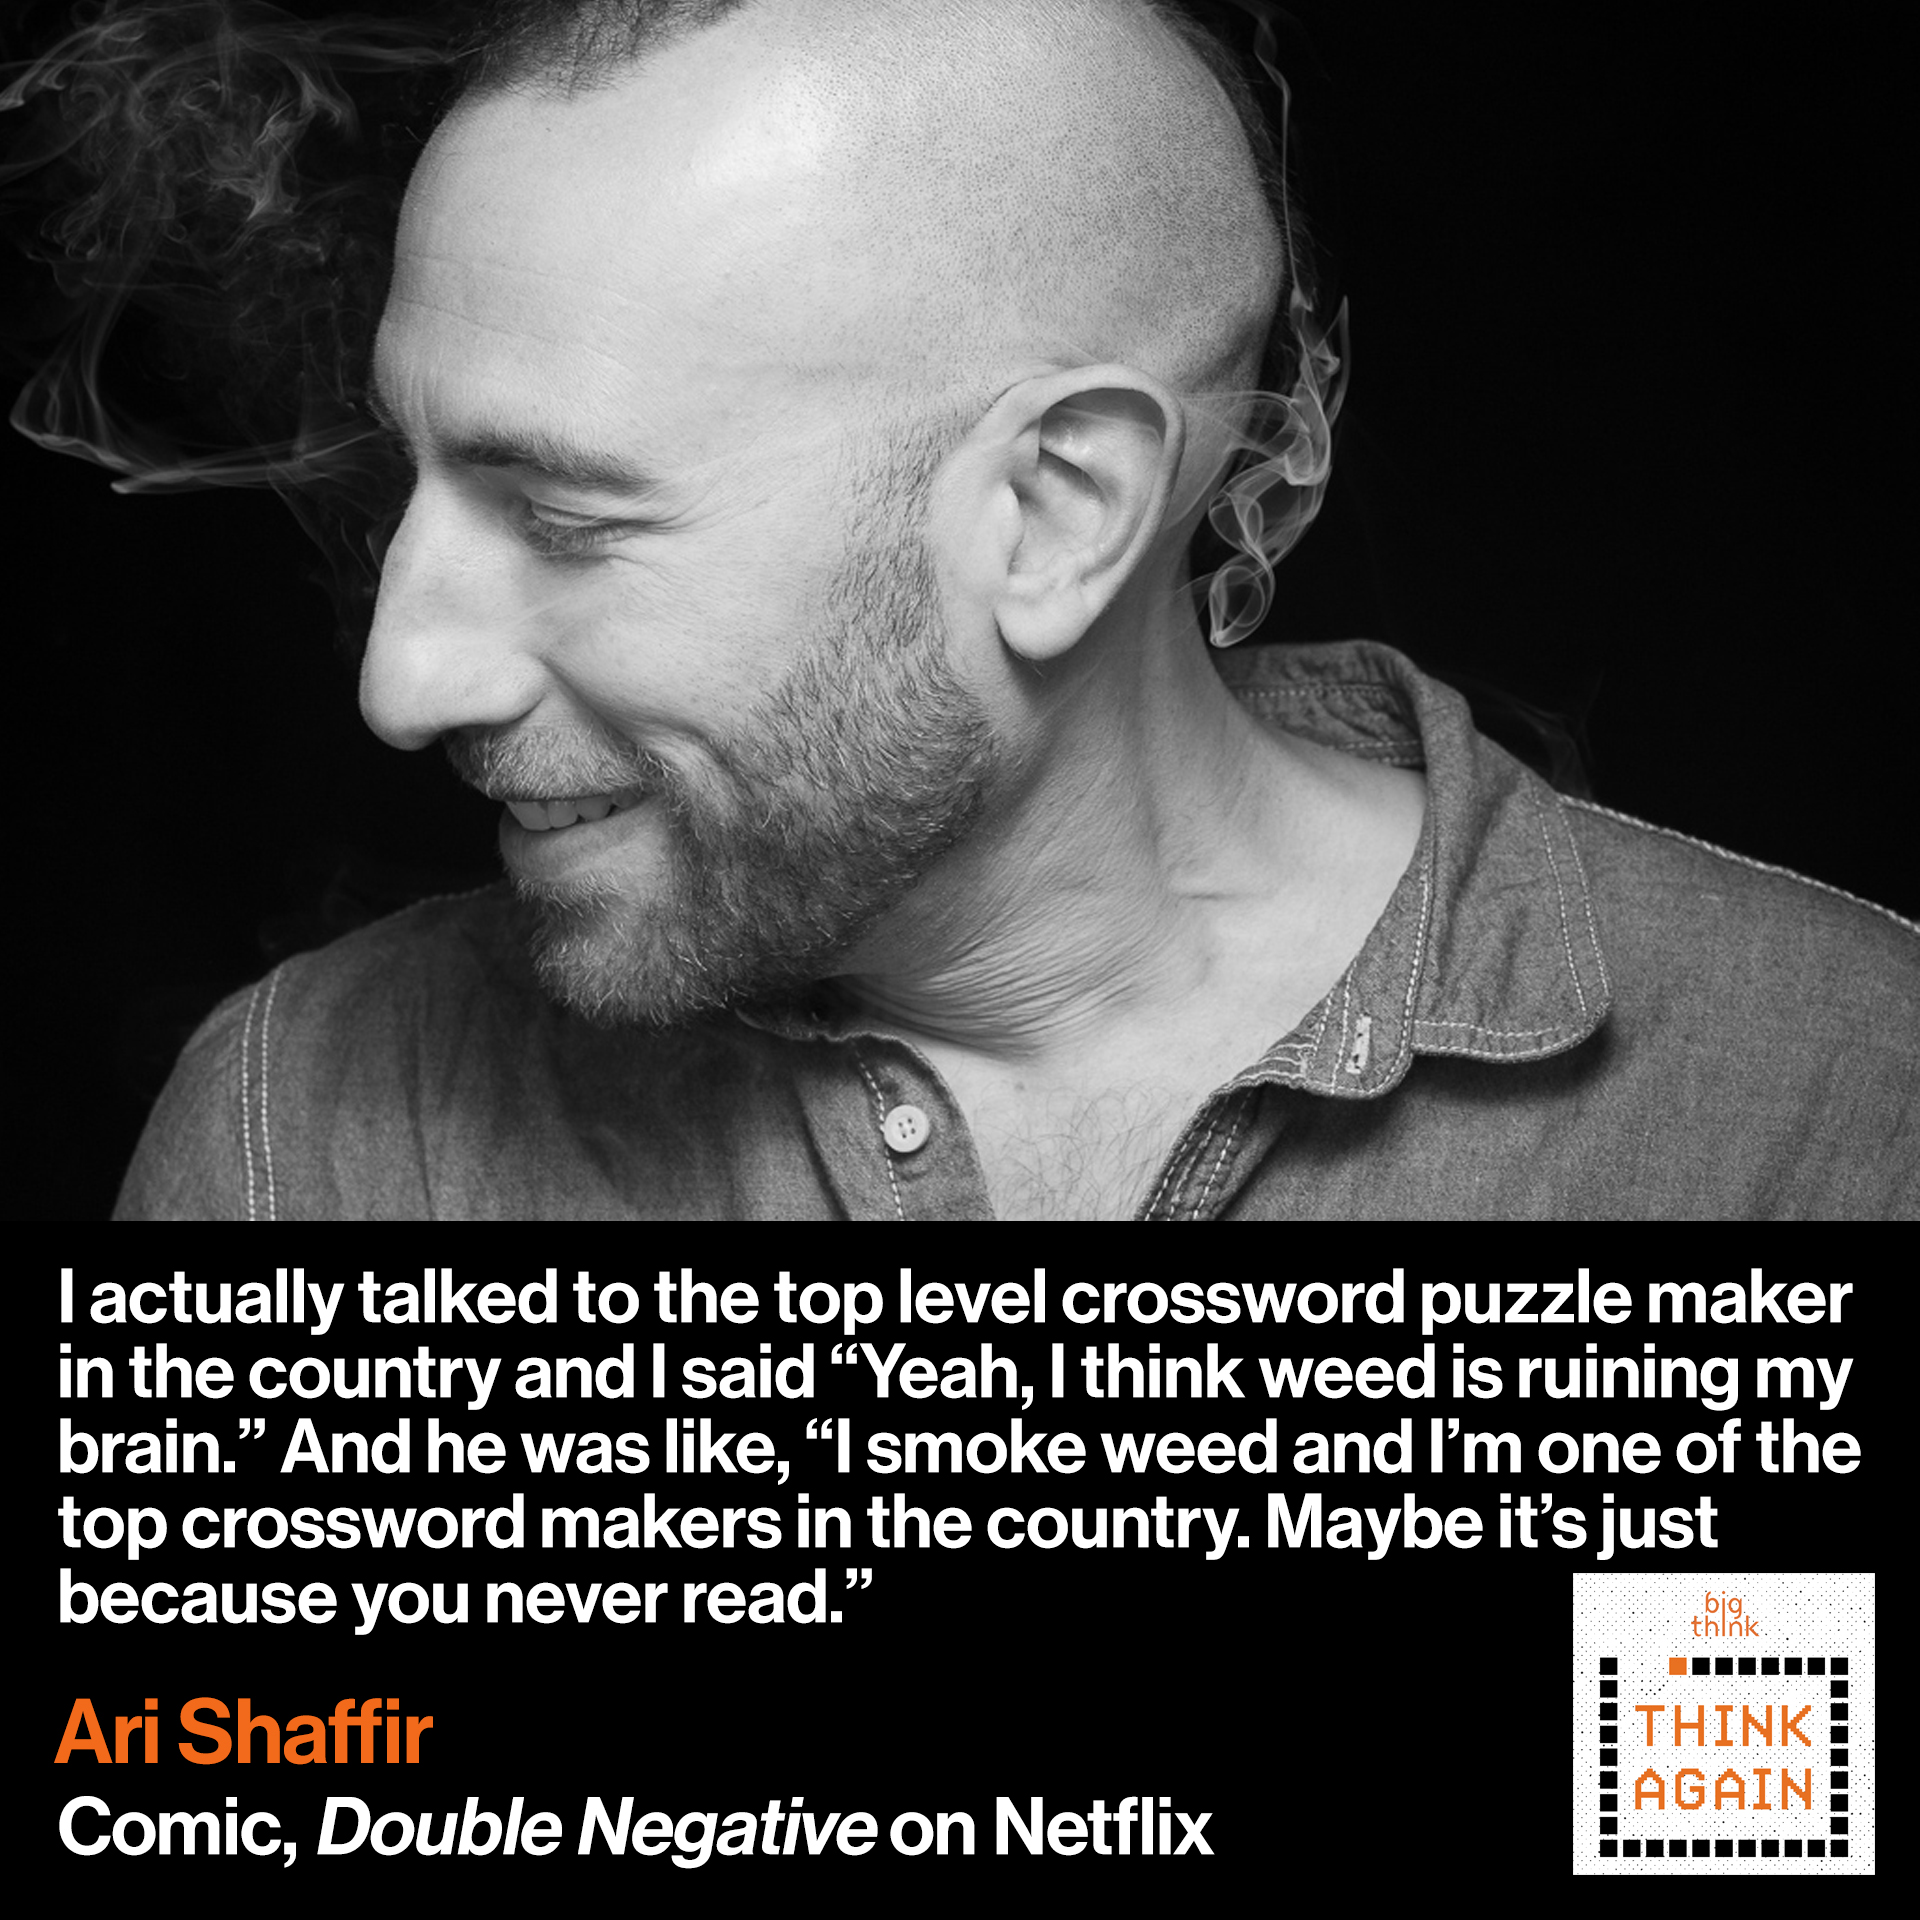 """Ari Shaffir Quote: I actually talked to the top level crossword puzzle maker  And I said """"Yeah, I think weed is ruining my brain.""""  And he was like """"I smoke weed and I'm one of the top  crossword makers in the country. Maybe it's just 'cause you  never read."""""""